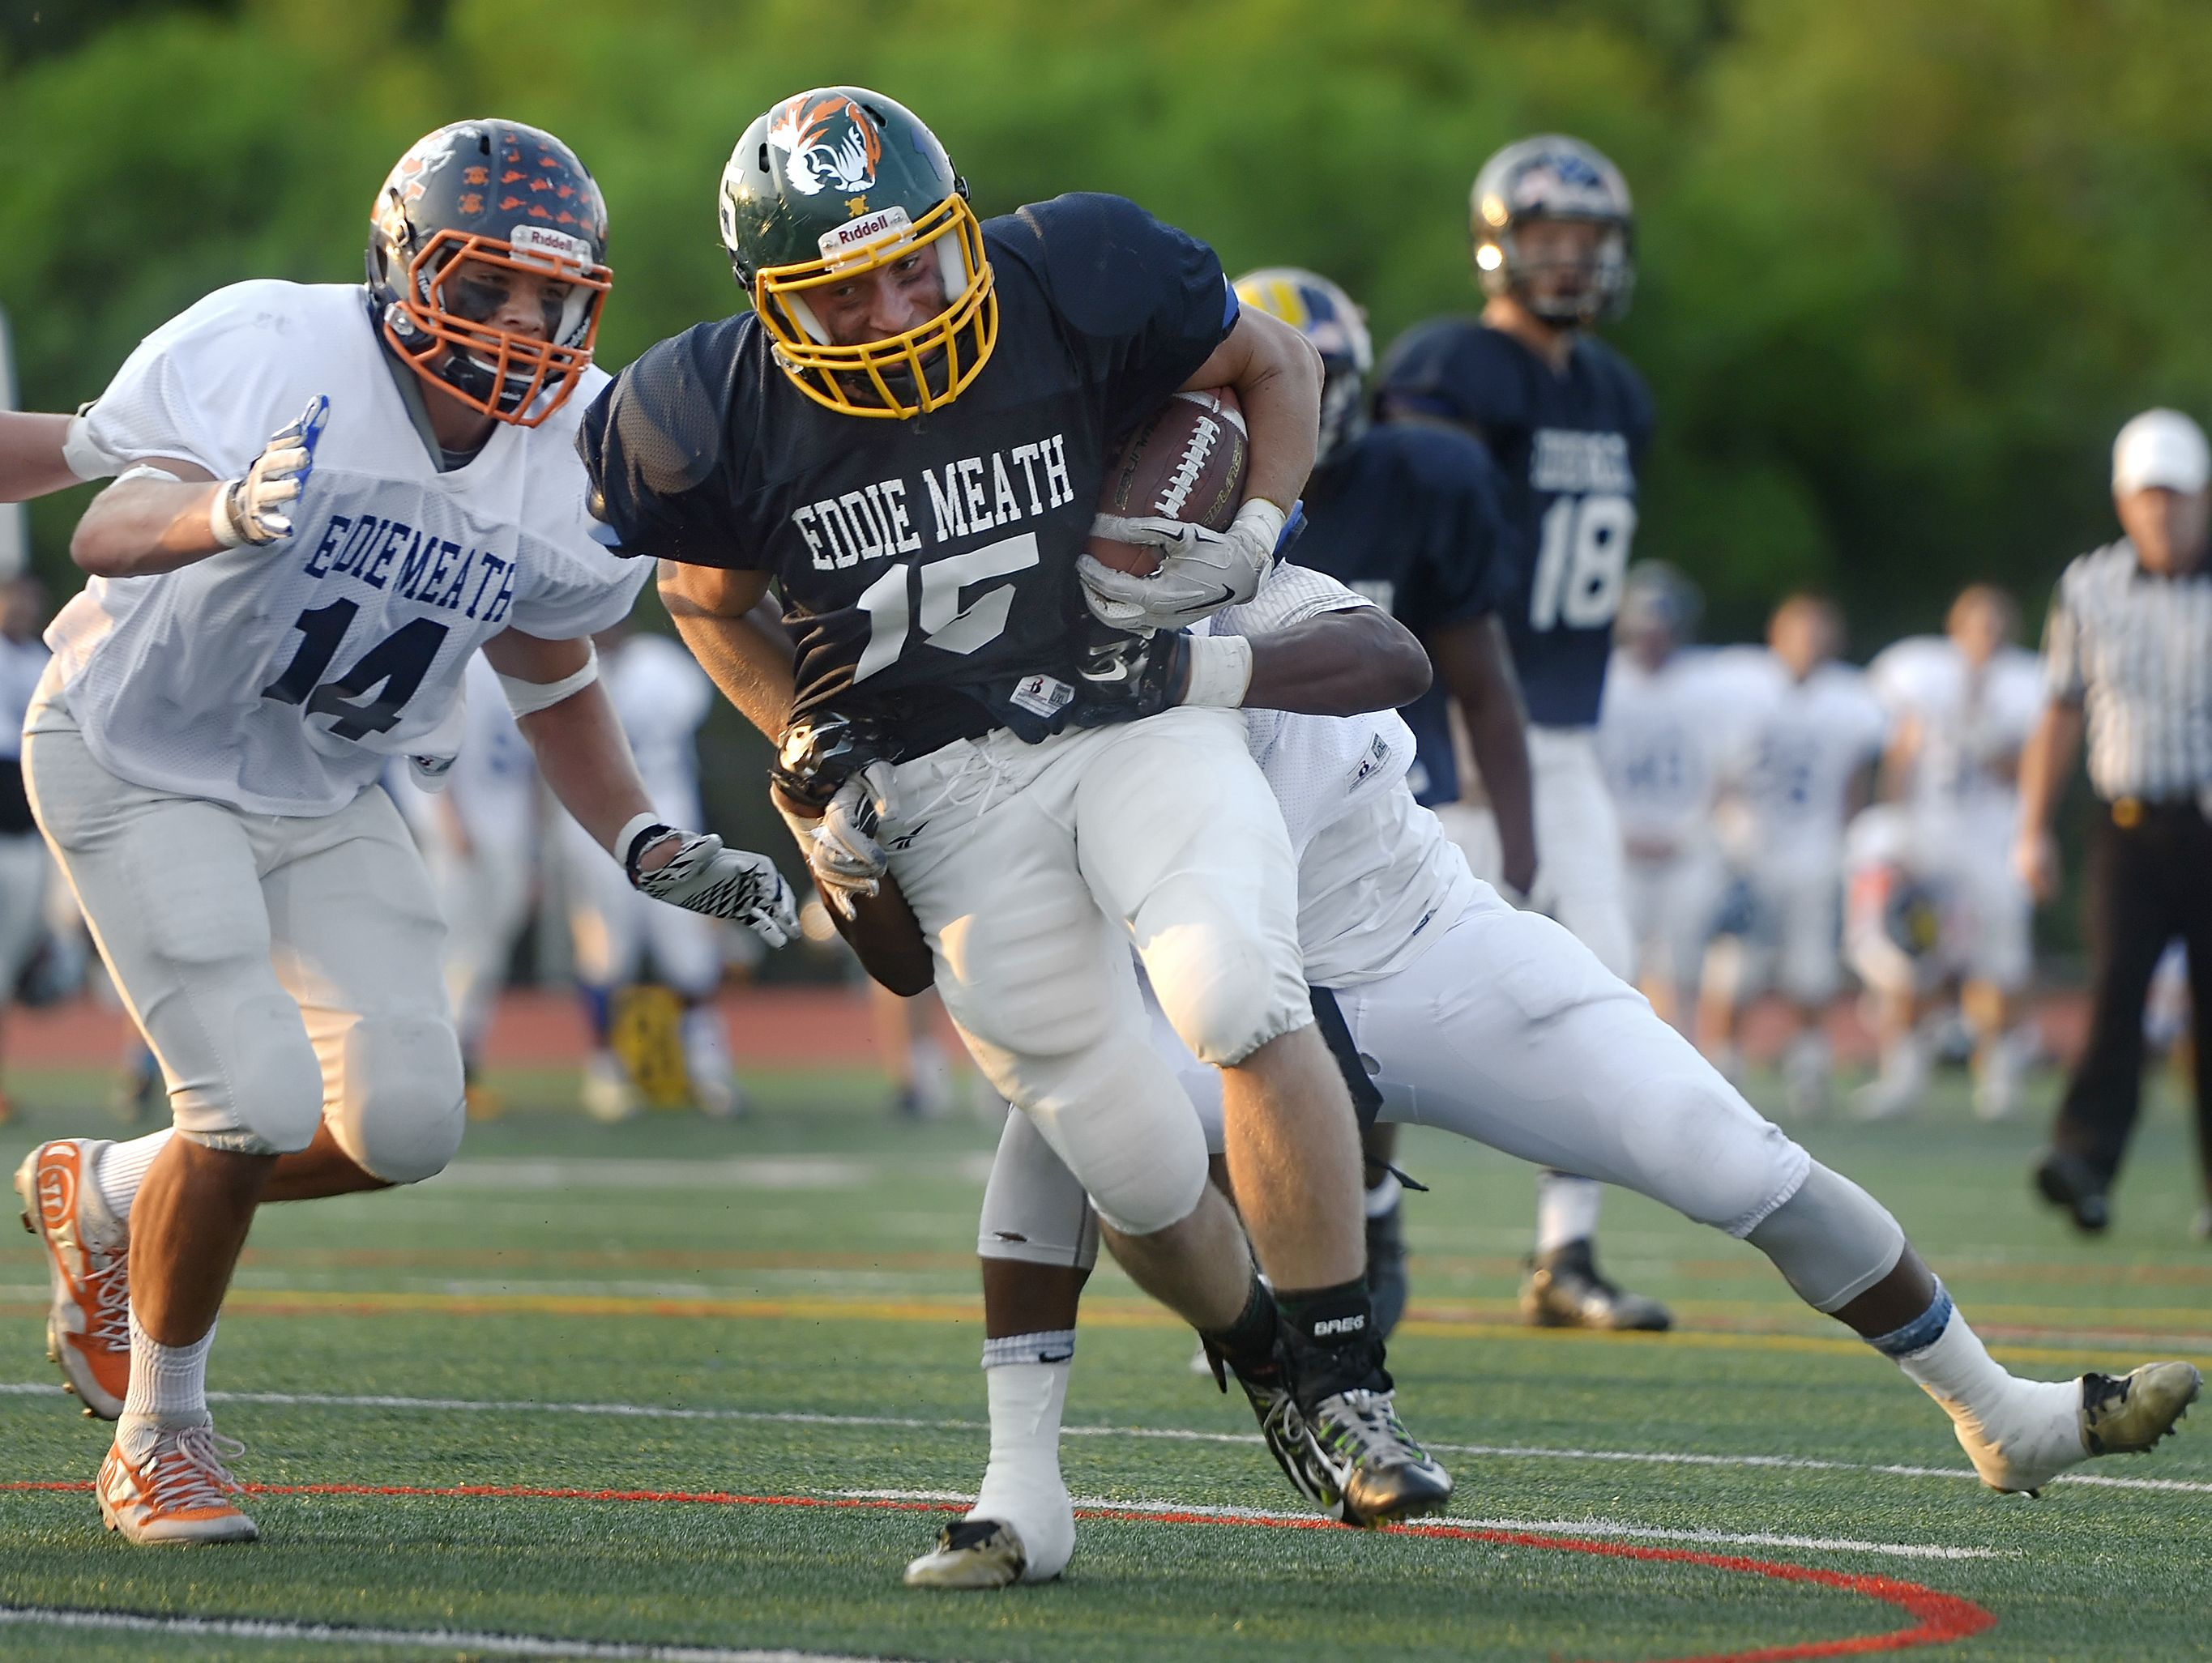 Alexander's Tyler Laird breaks a tackle during a run for a touchdown in last year's Eddie Meath All-Star Football Game.